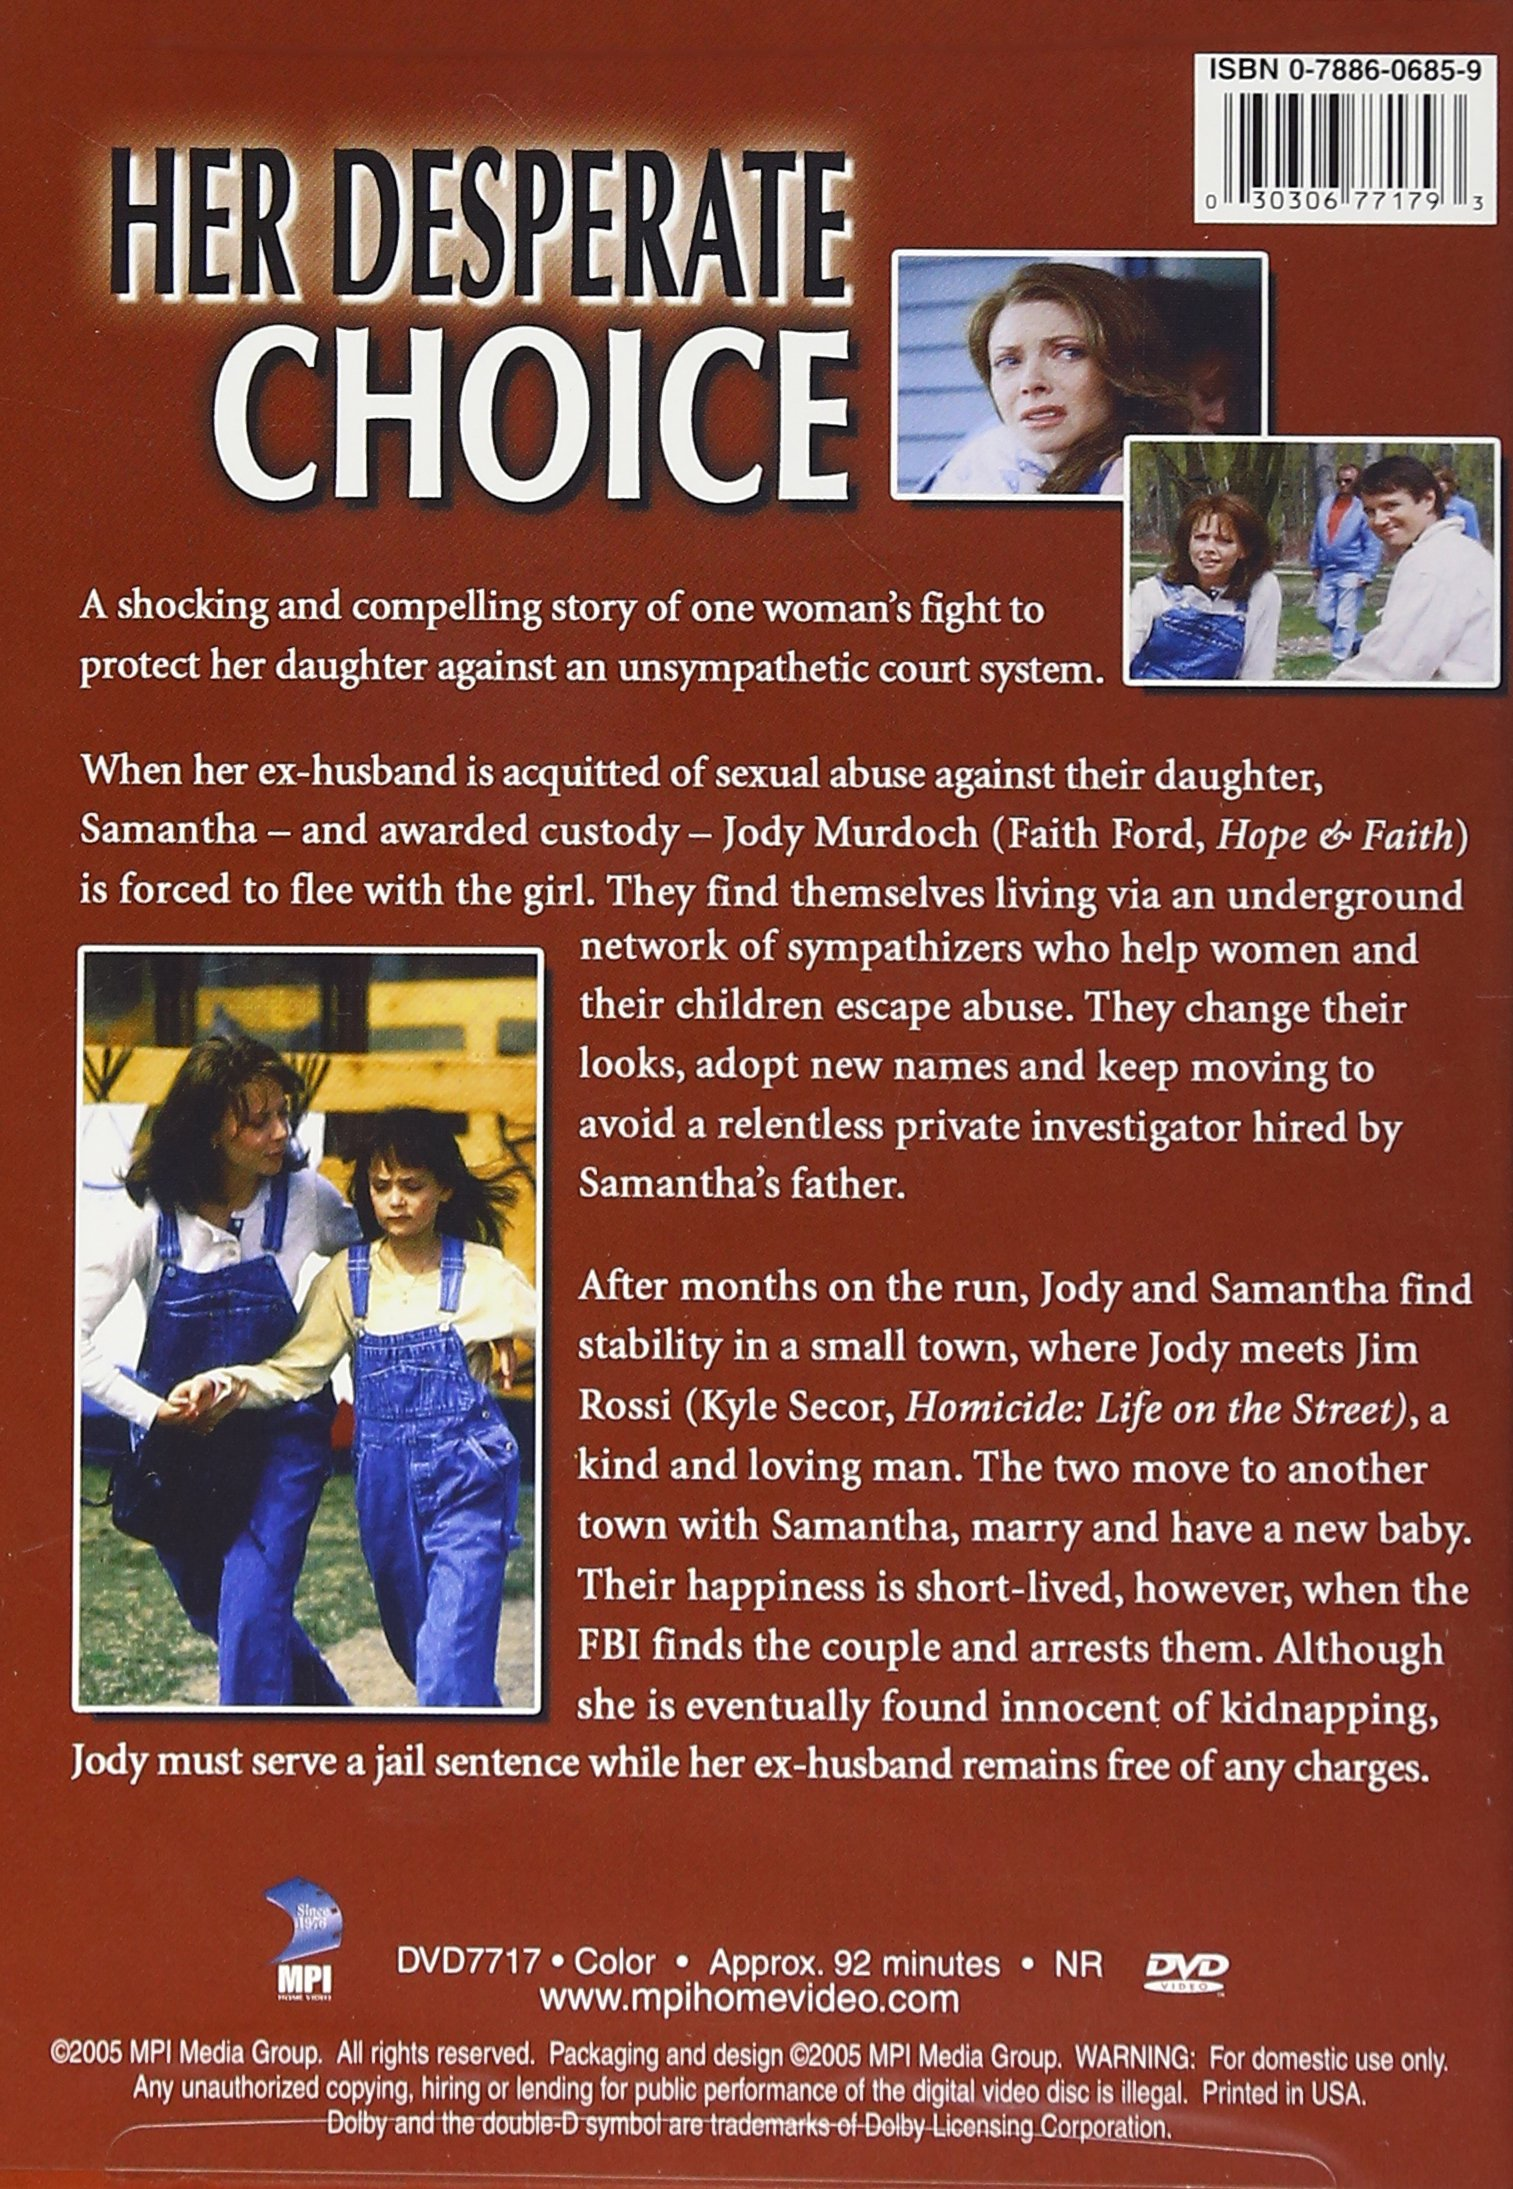 Her Desperate Choice (True Stories Collection TV Movie) by Mpi Home Video